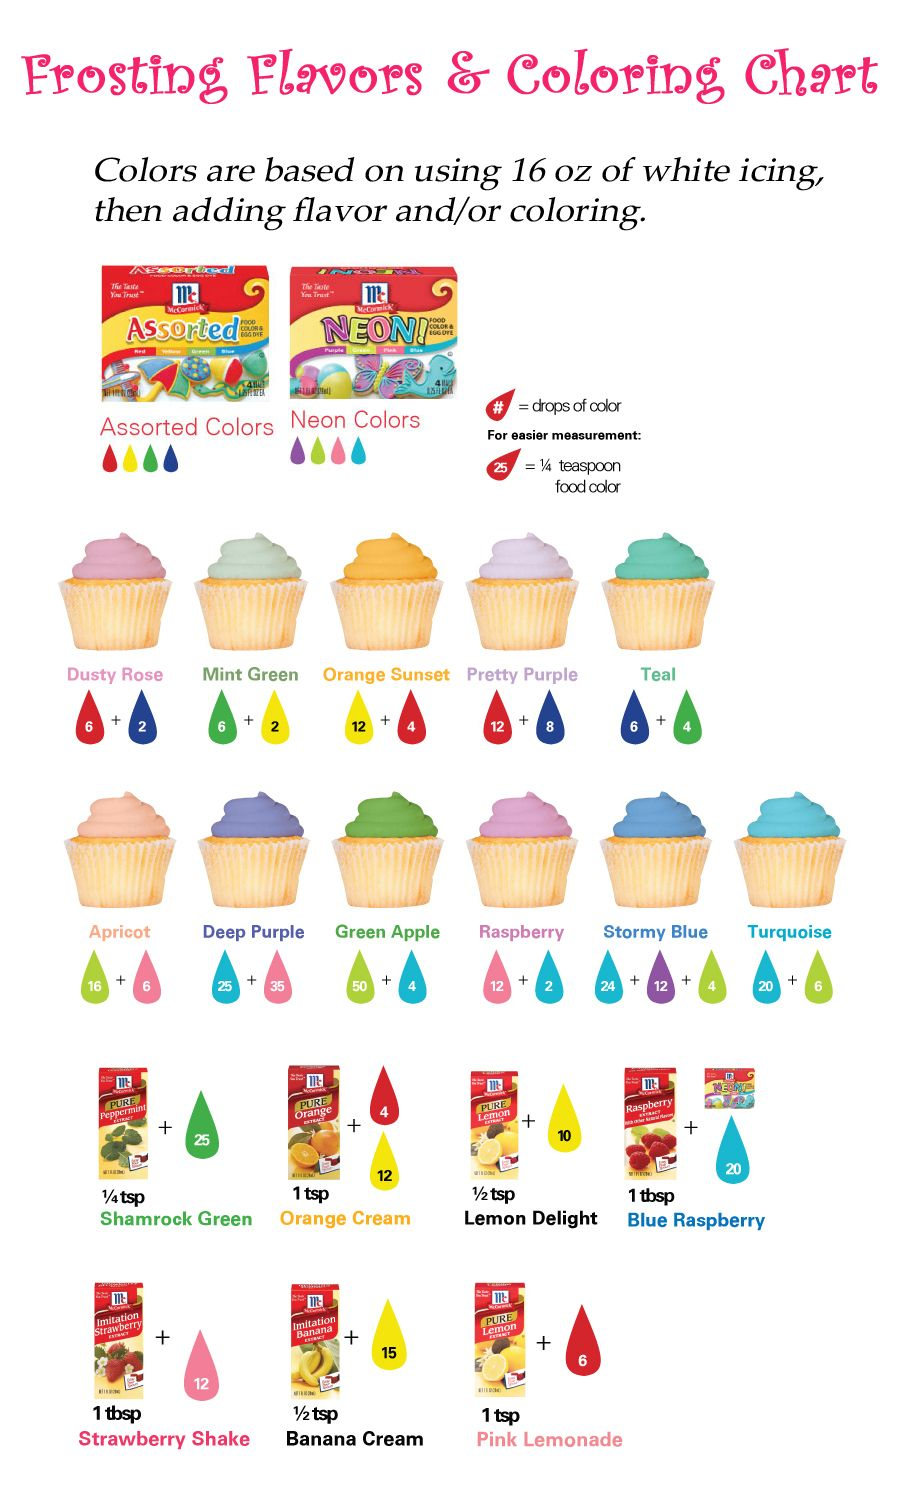 How to create unique frosting flavors and colors found on the how to create unique frosting flavors and colors found on the mccormick website www nvjuhfo Choice Image